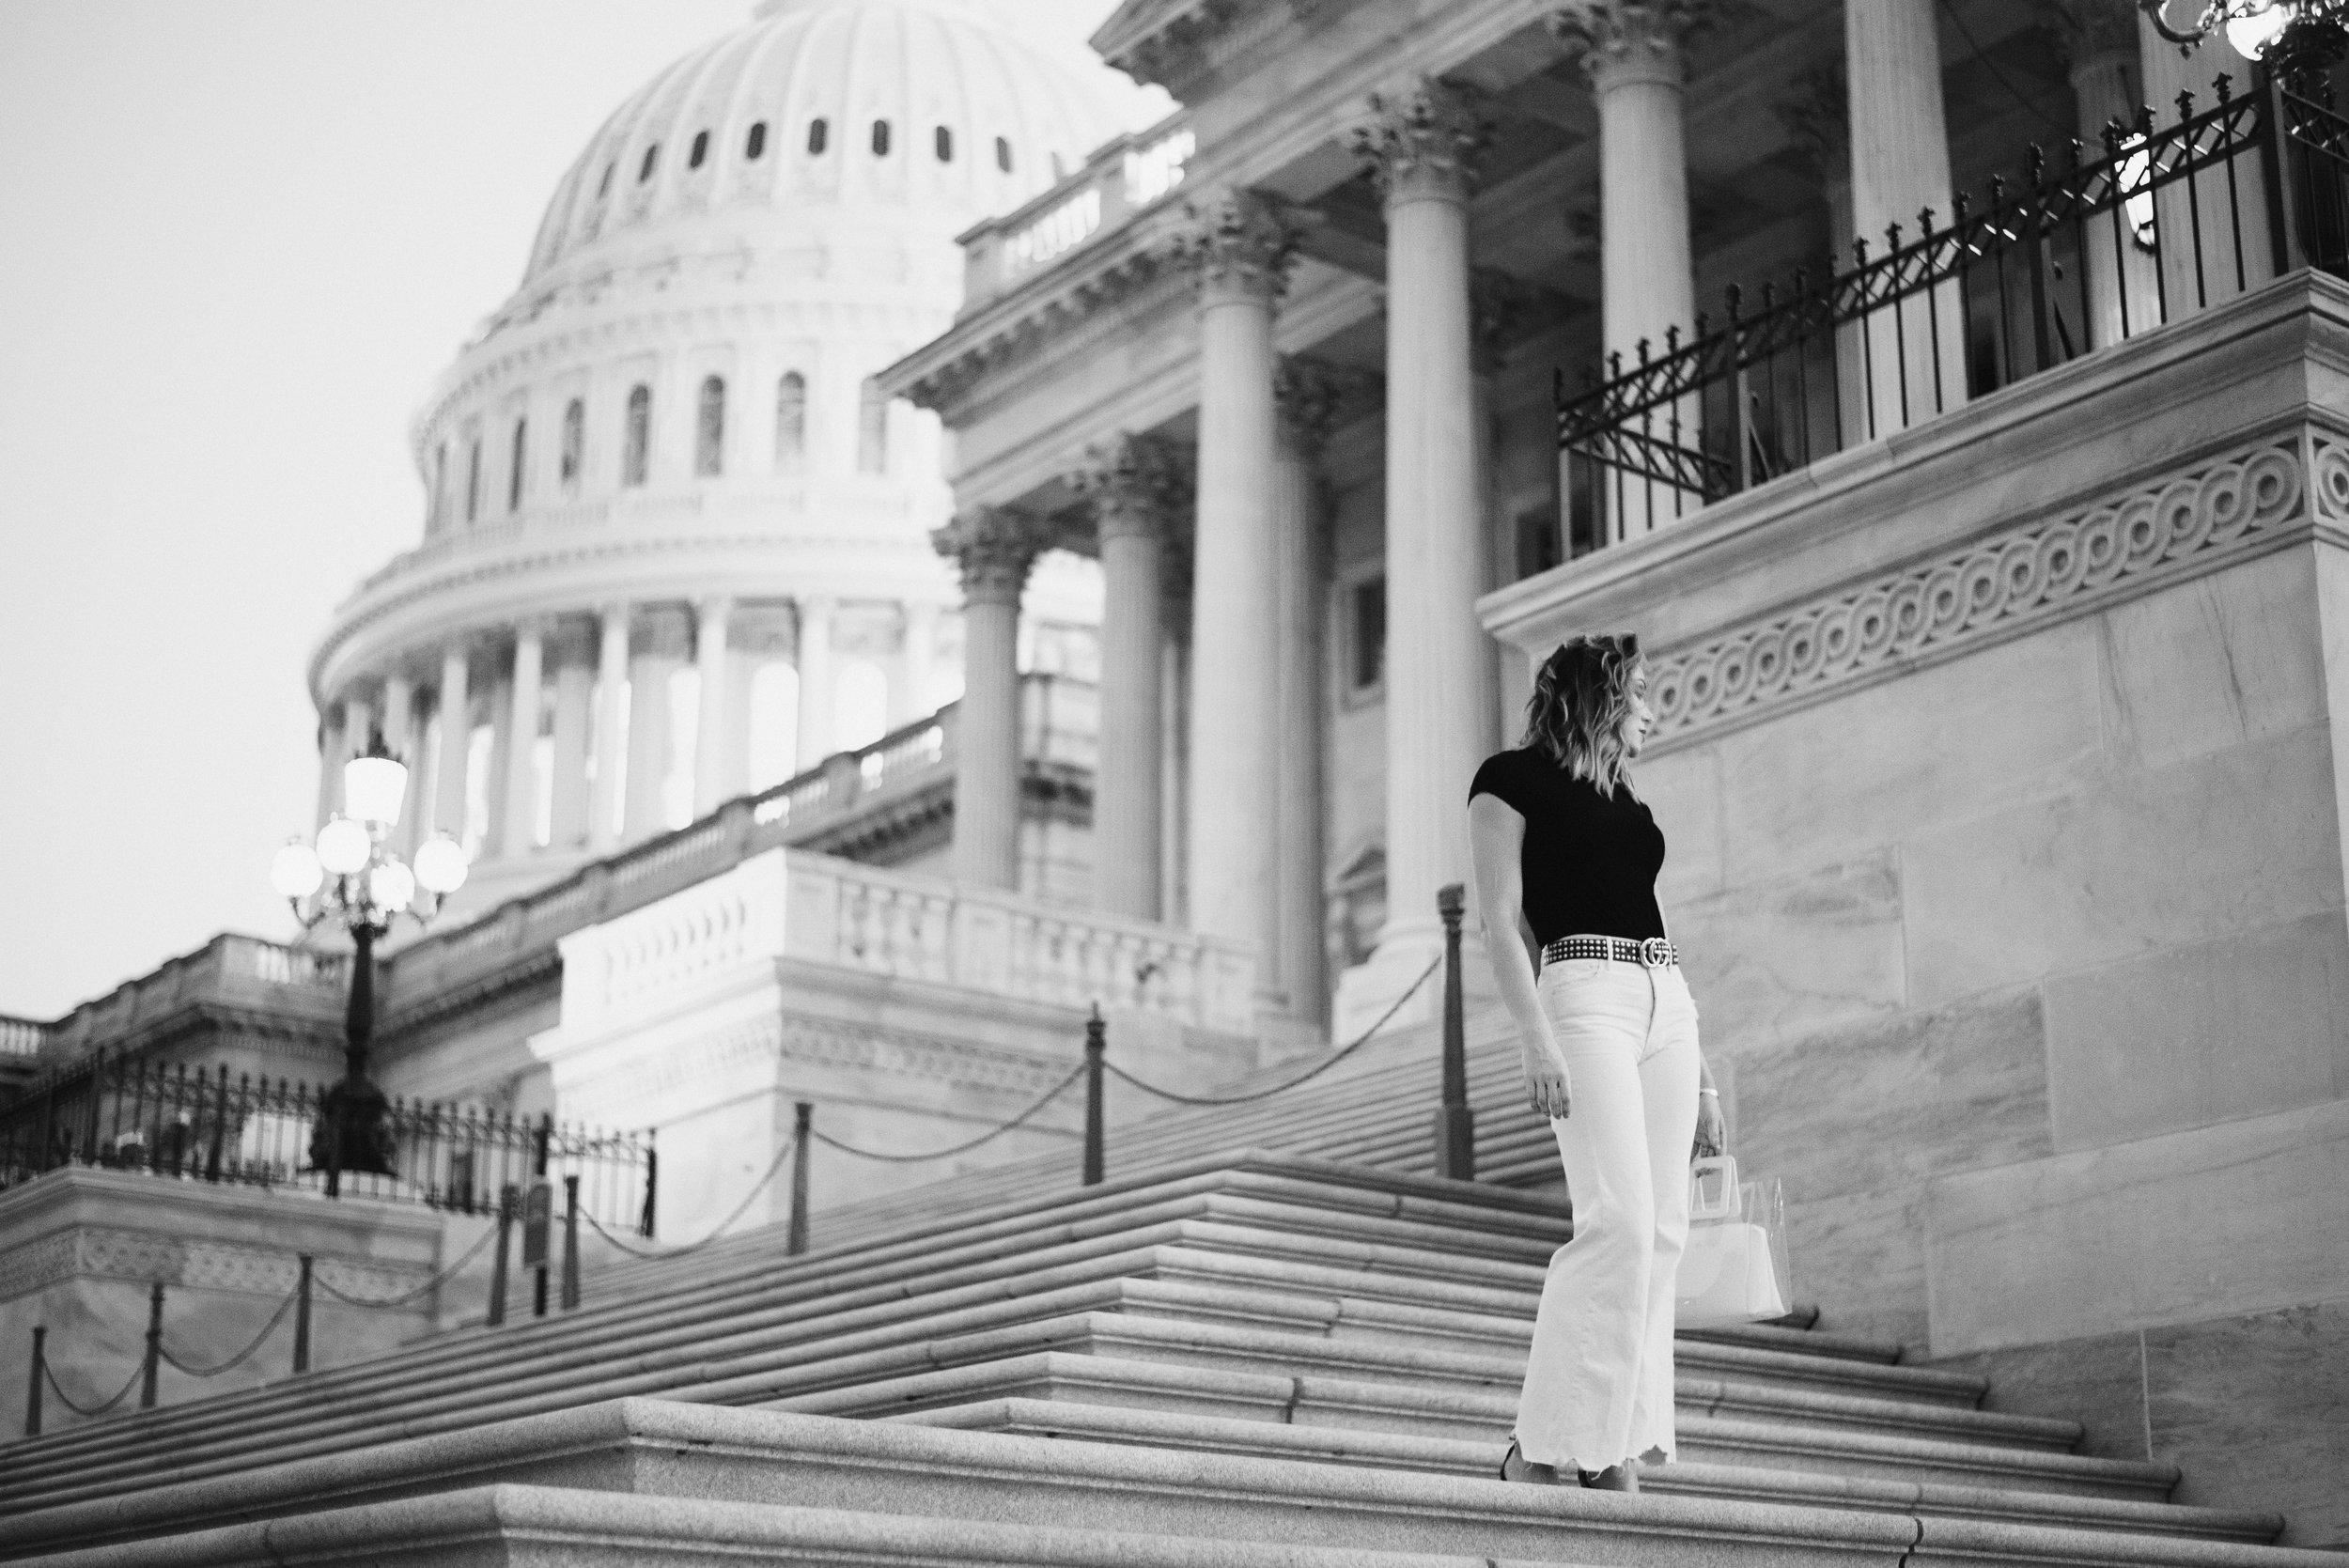 black and white photo of woman on steps of United States Capitol building in Washington, D.C.